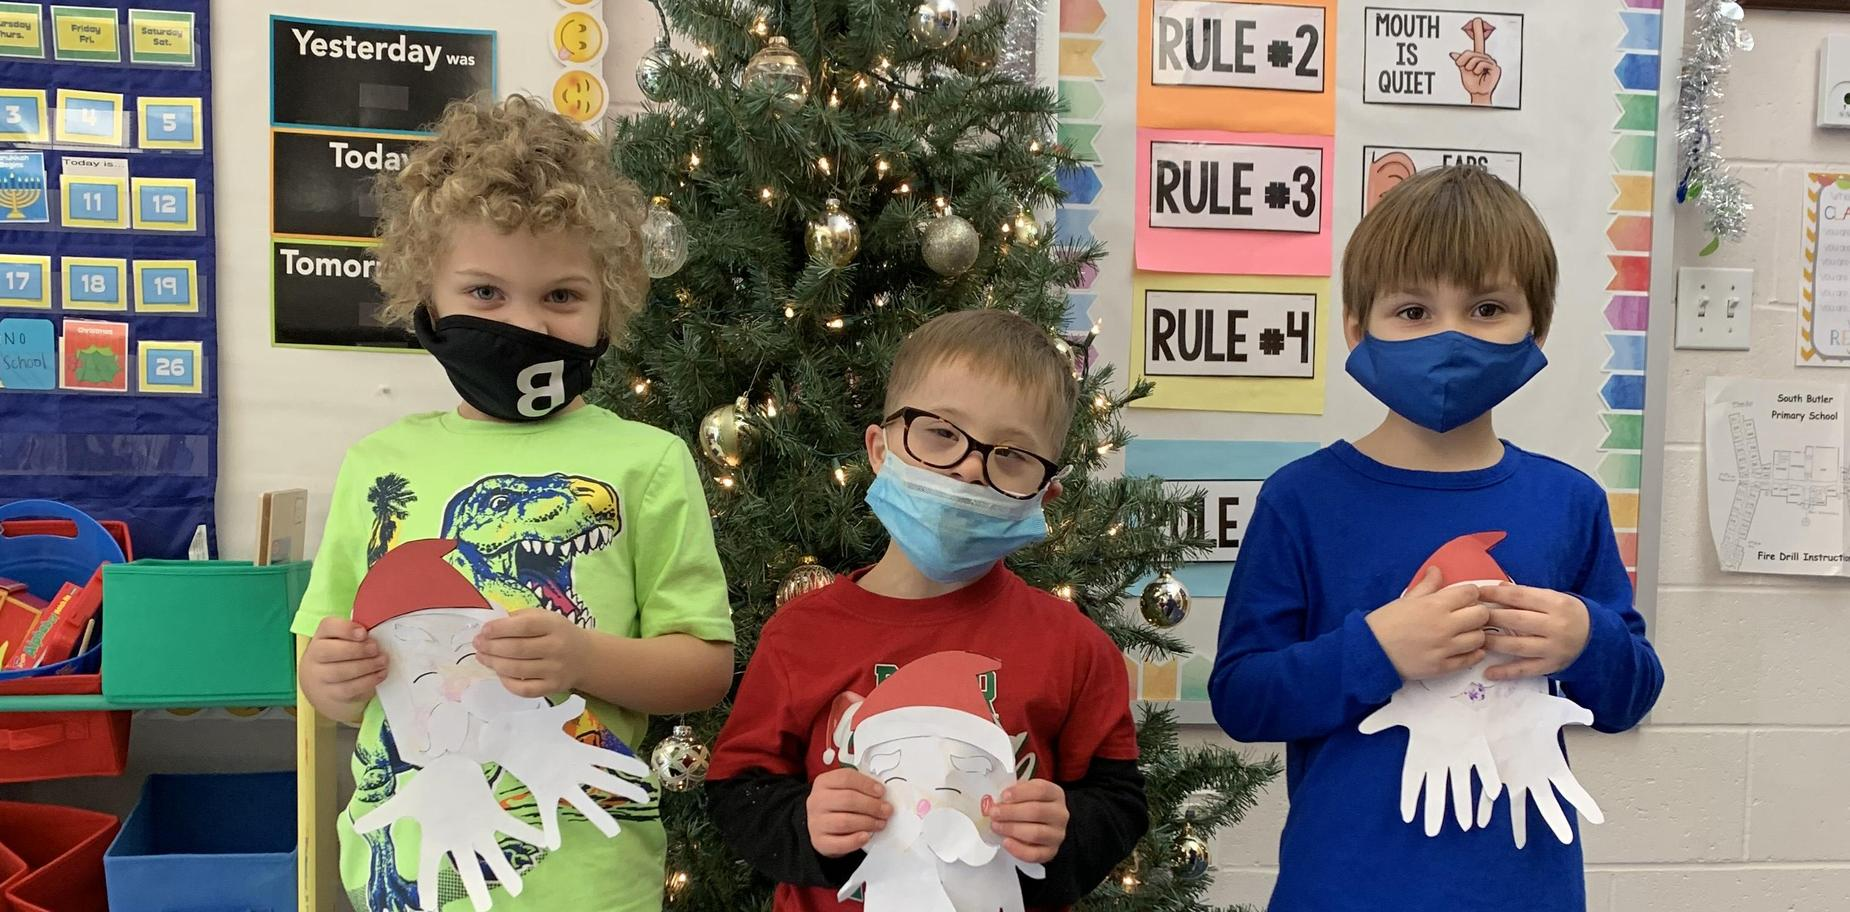 Students in holiday attire